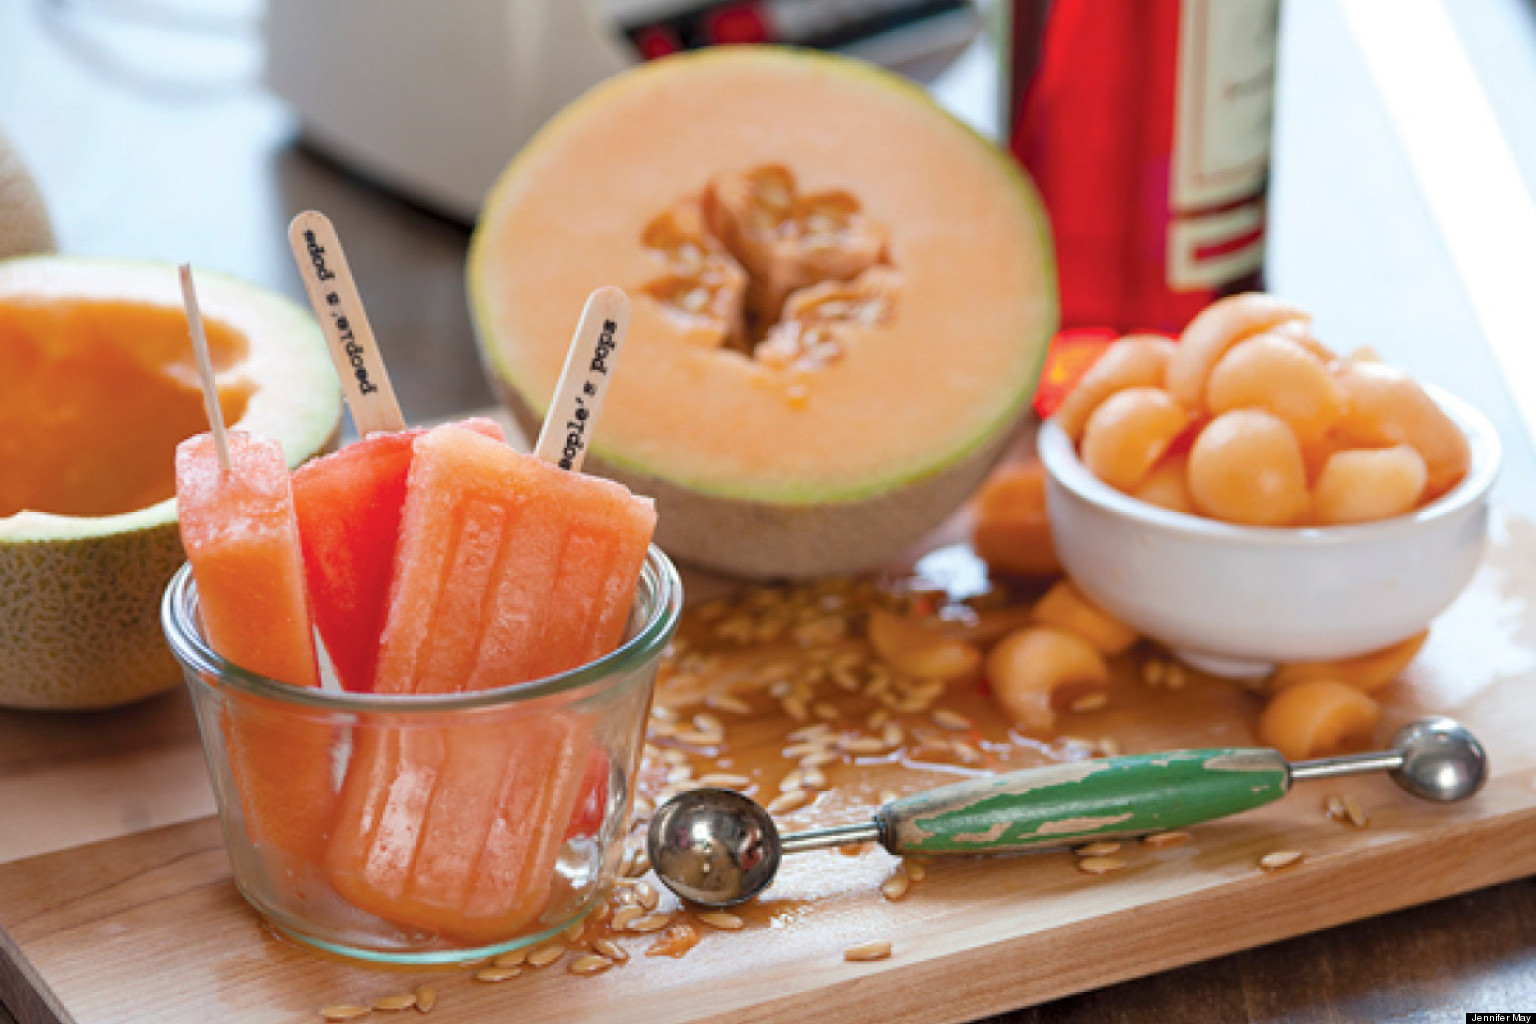 How To Eat Cantaloupe And Honeydew, Other Than Fruit Salad